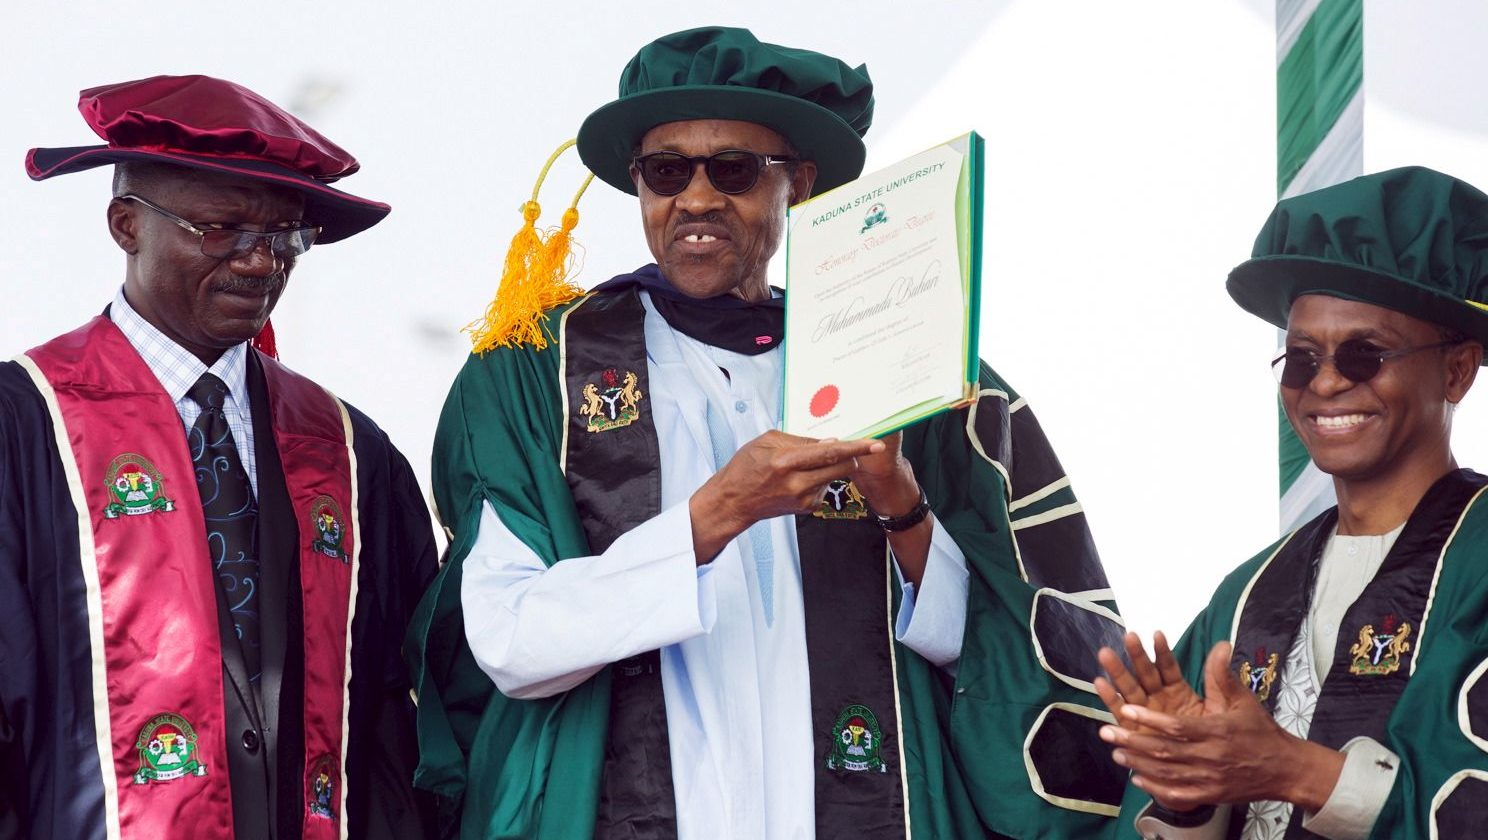 Nigeria's President Muhammadu Buhari receives a certificate after being conferred a doctorate during a graduation ceremony at Kaduna State University in Kaduna